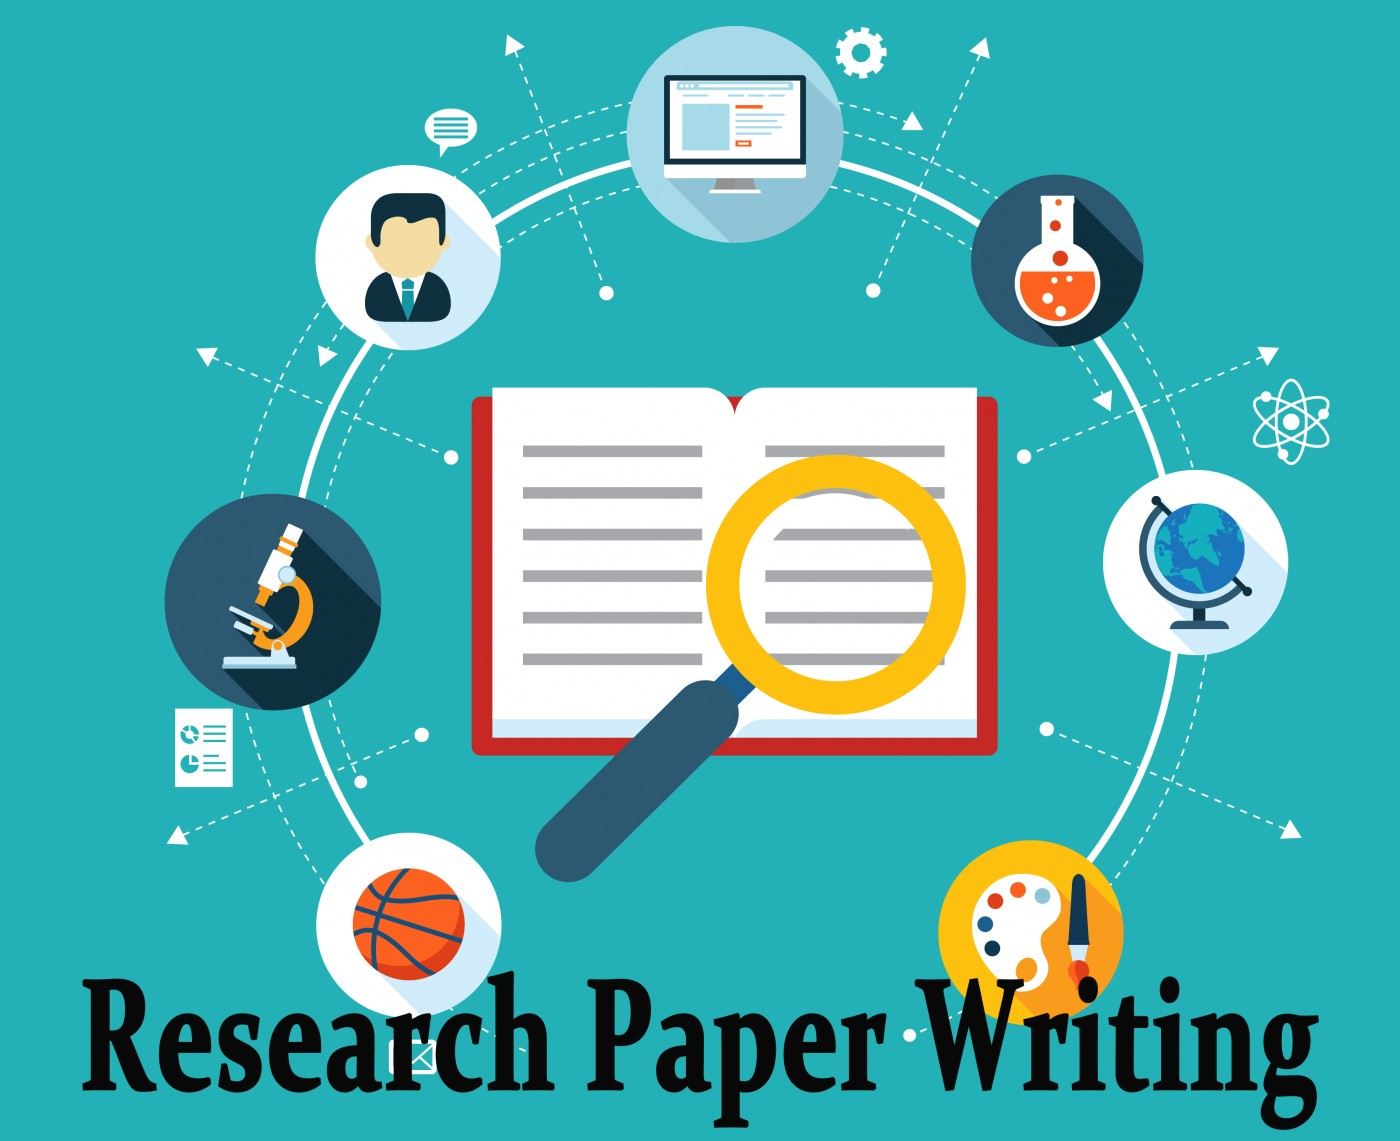 008 Writing Of Research Paper 503 Effective Fascinating Sample Introduction Steps A Pdf 1400